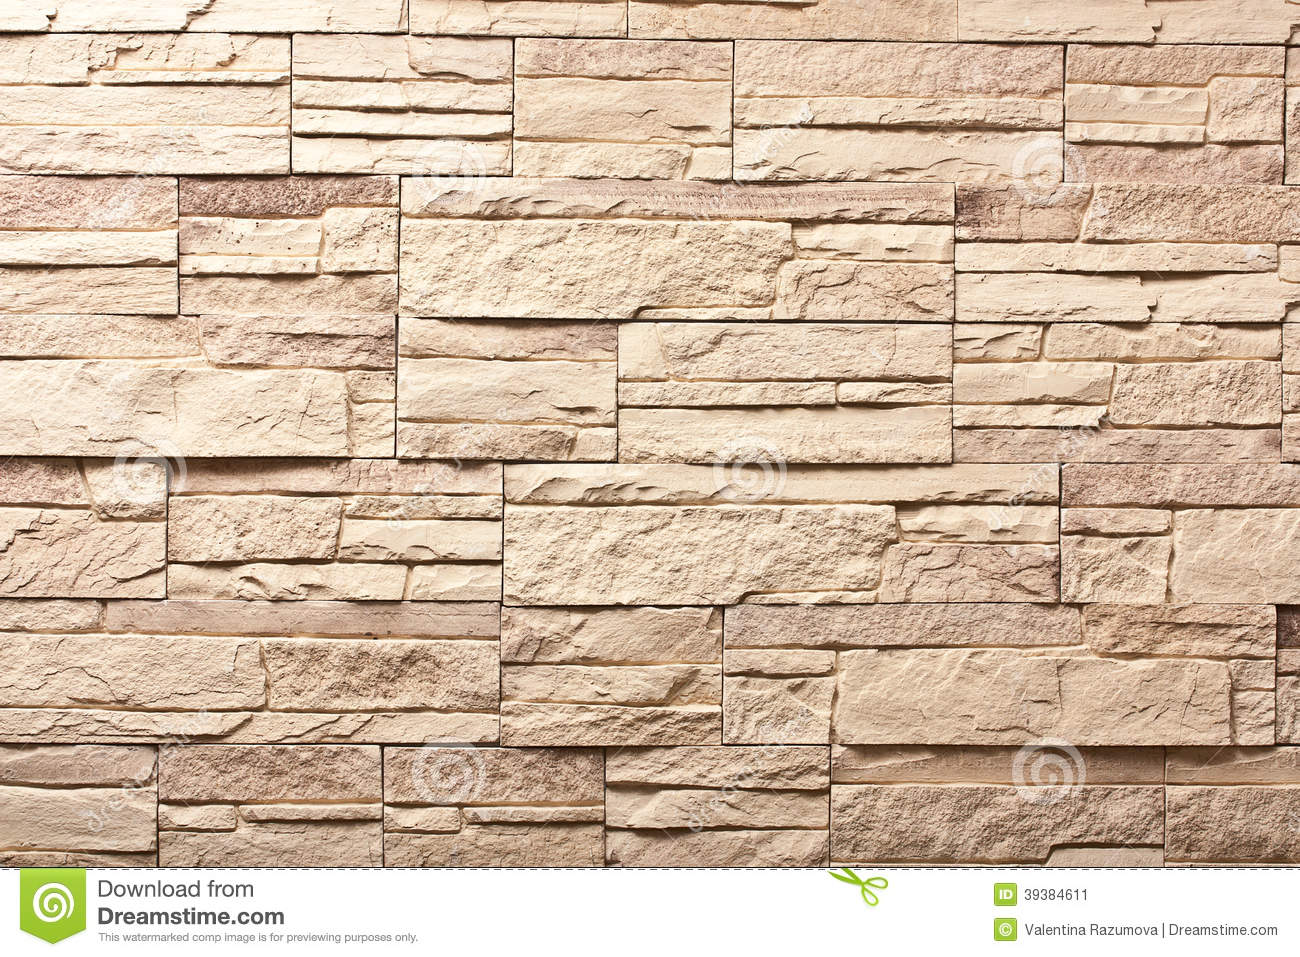 Mur en pierre d 39 ardoise d corative photo stock image 39384611 - Mur en ardoise ...